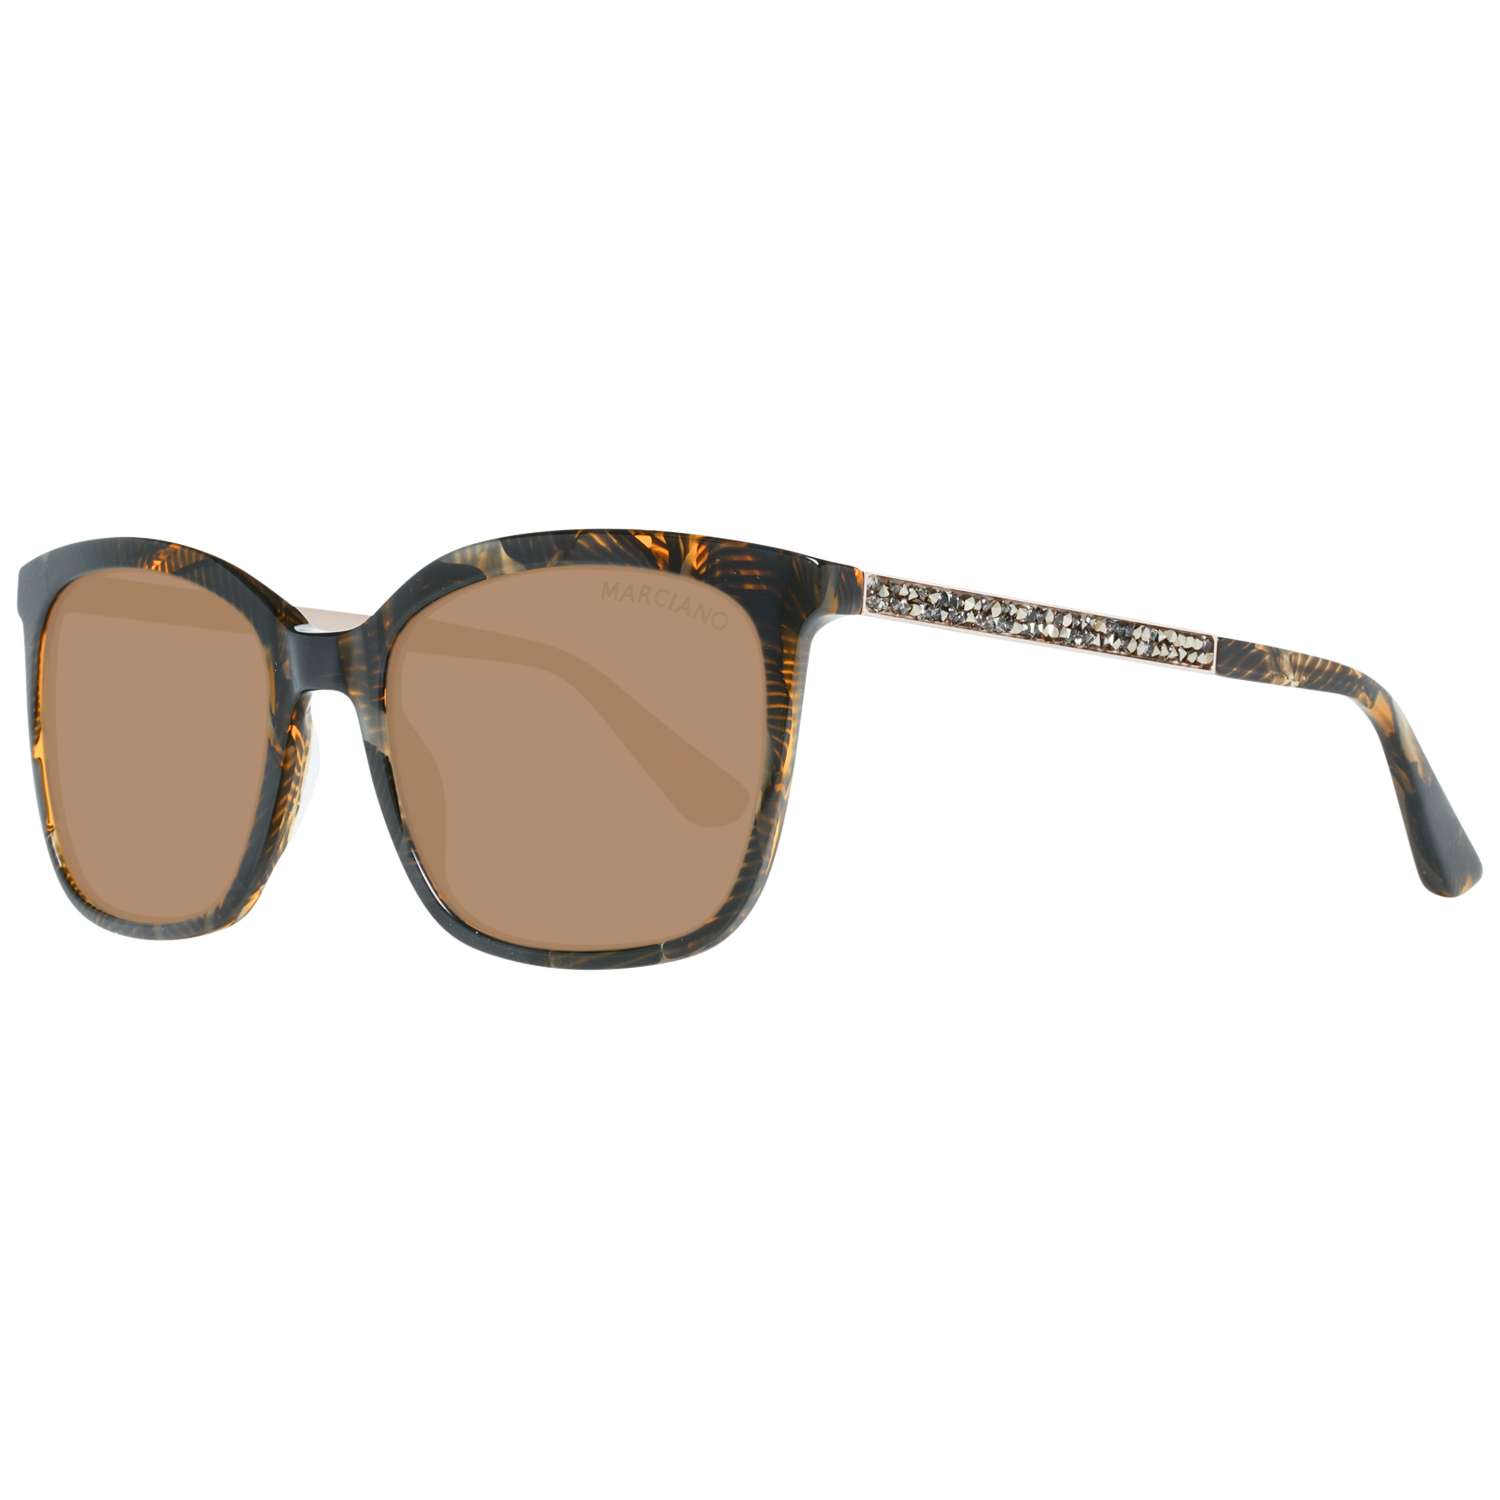 Guess by Marciano Sunglasses GM0756 50E 54 Women Brown